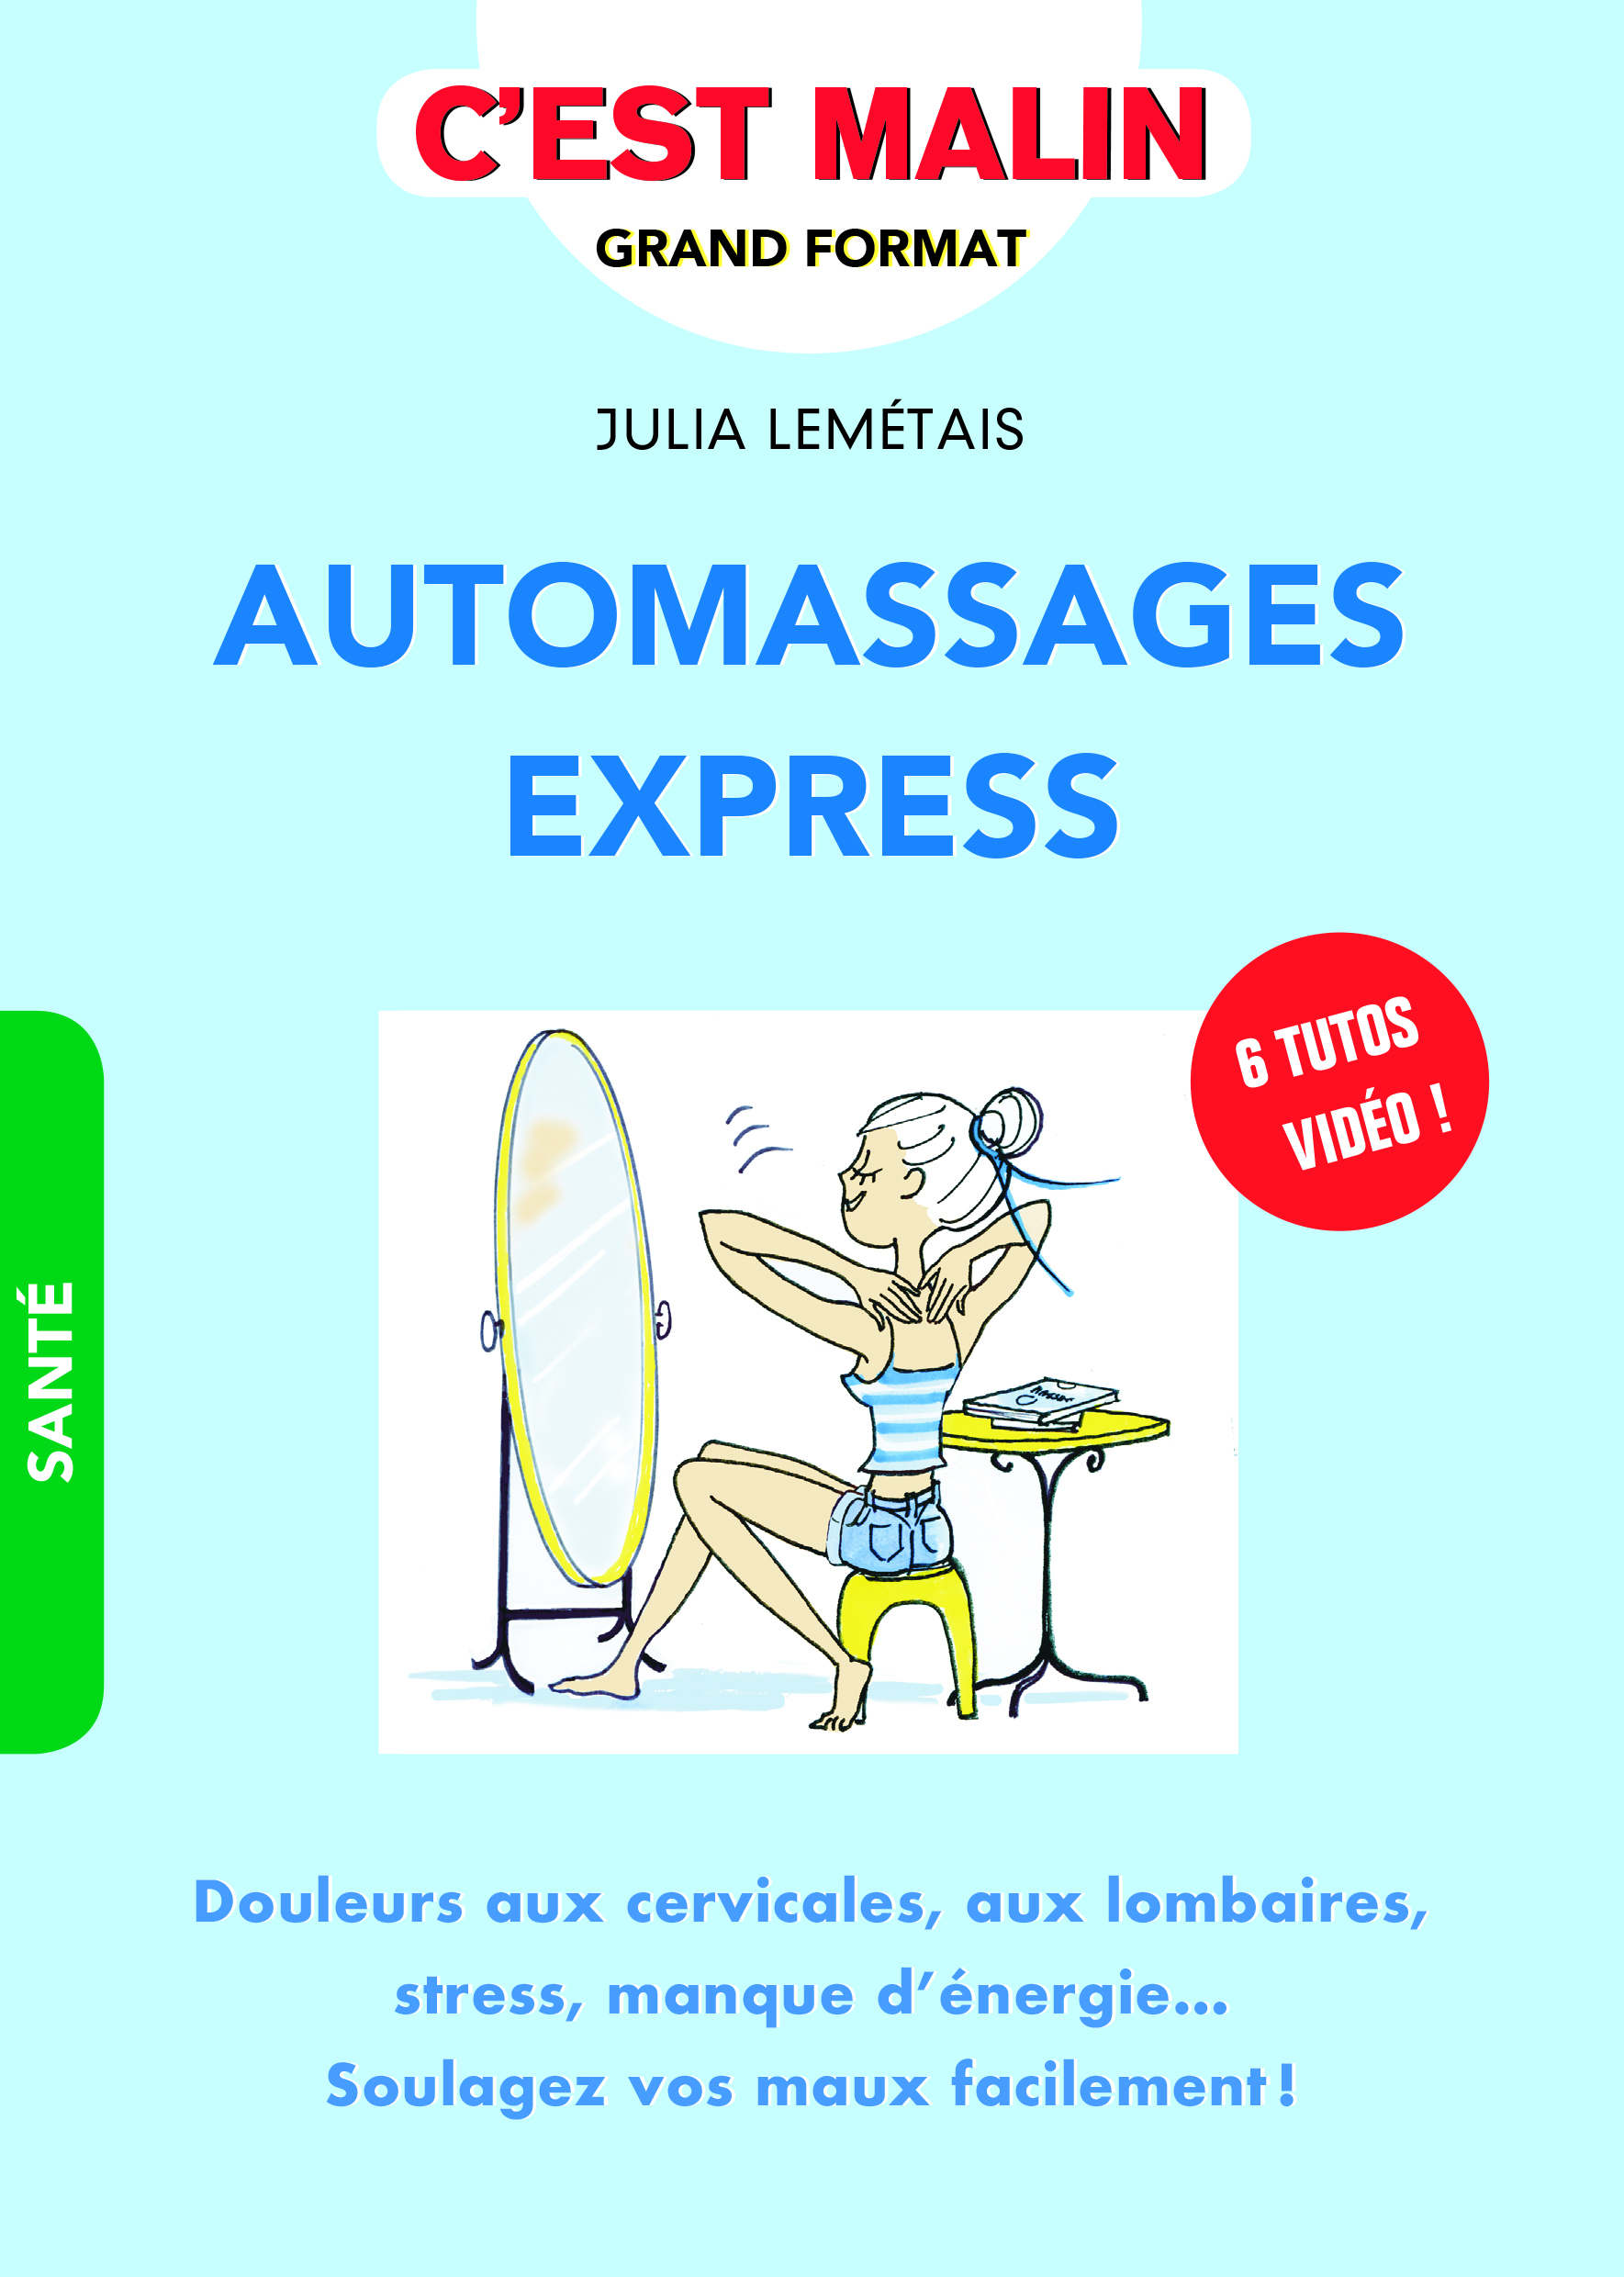 AUTOMASSAGES EXPRESS, C'EST MALIN